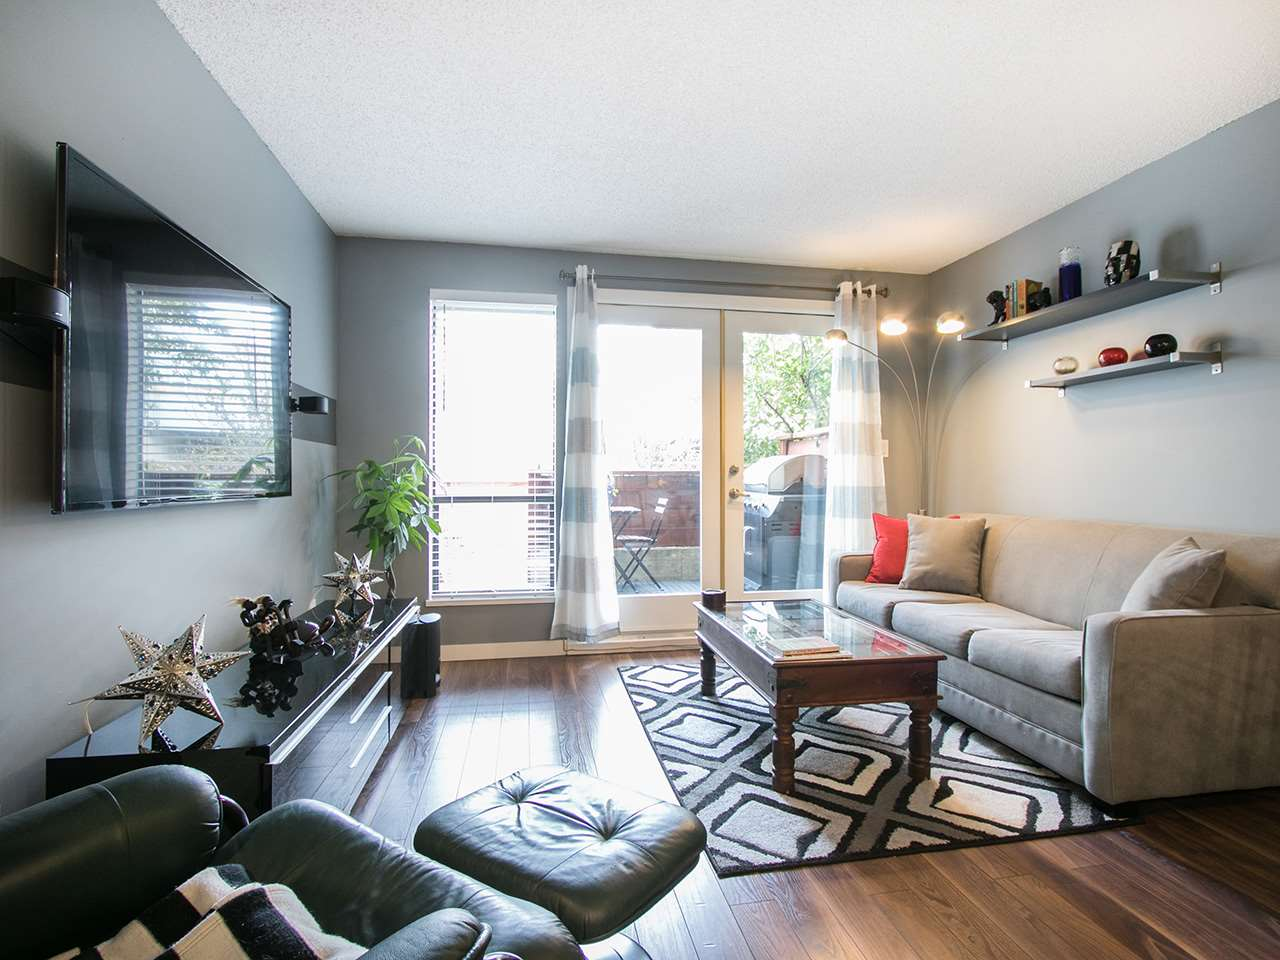 Photo 2: 101 1775 W 10TH AVENUE in Vancouver: Fairview VW Condo for sale (Vancouver West)  : MLS® # R2038742